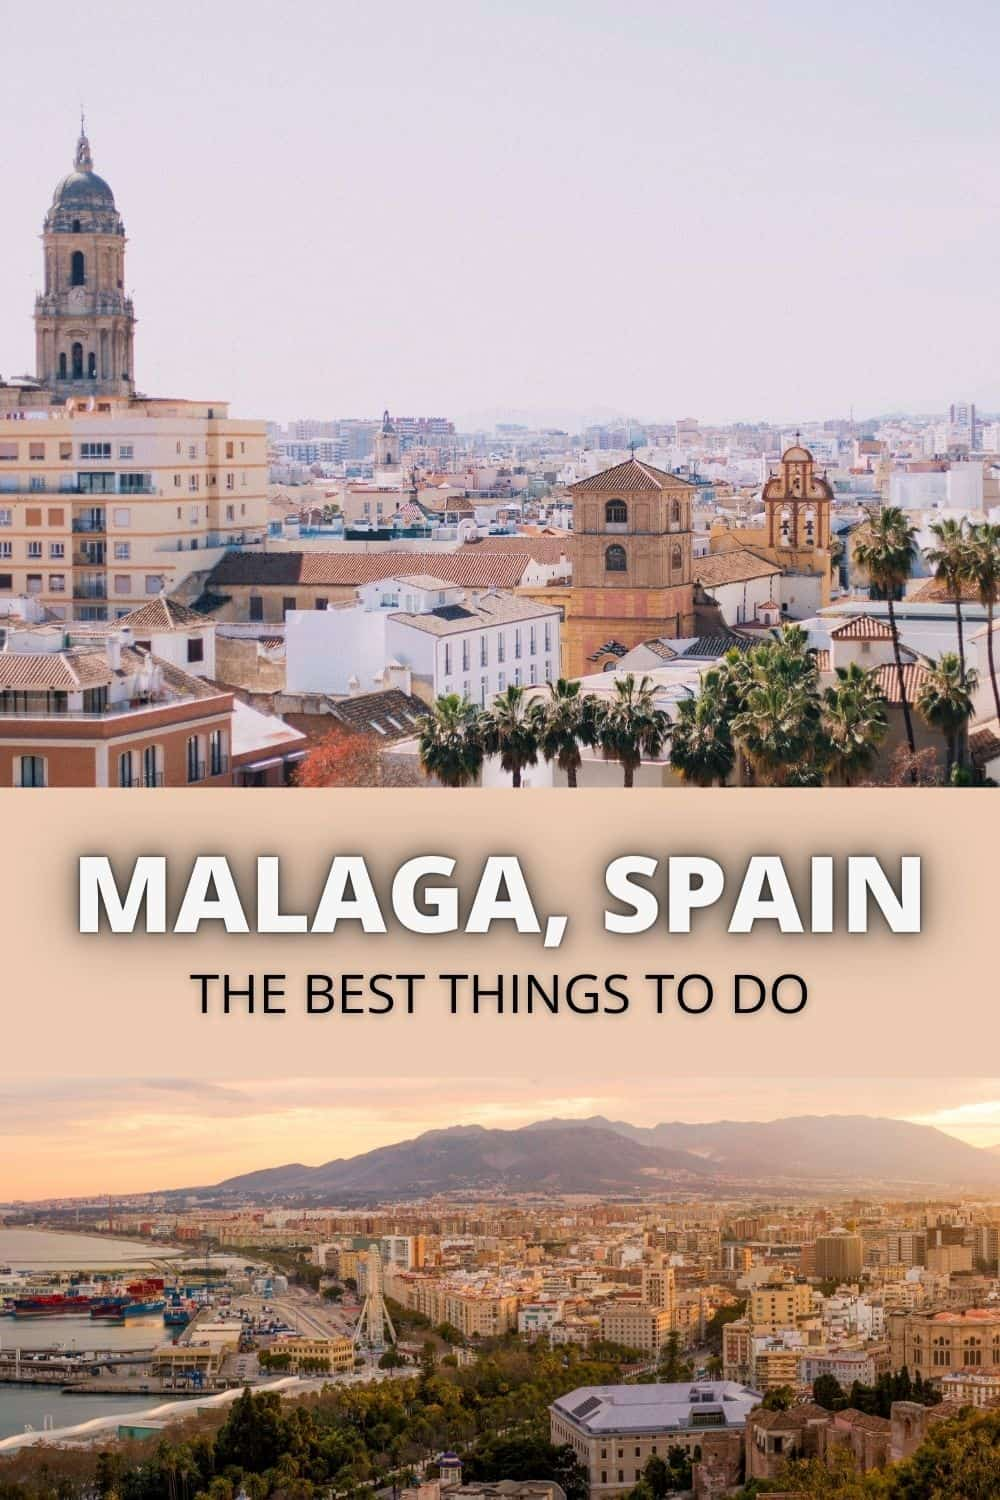 Best Things To Do In Malaga, Spain